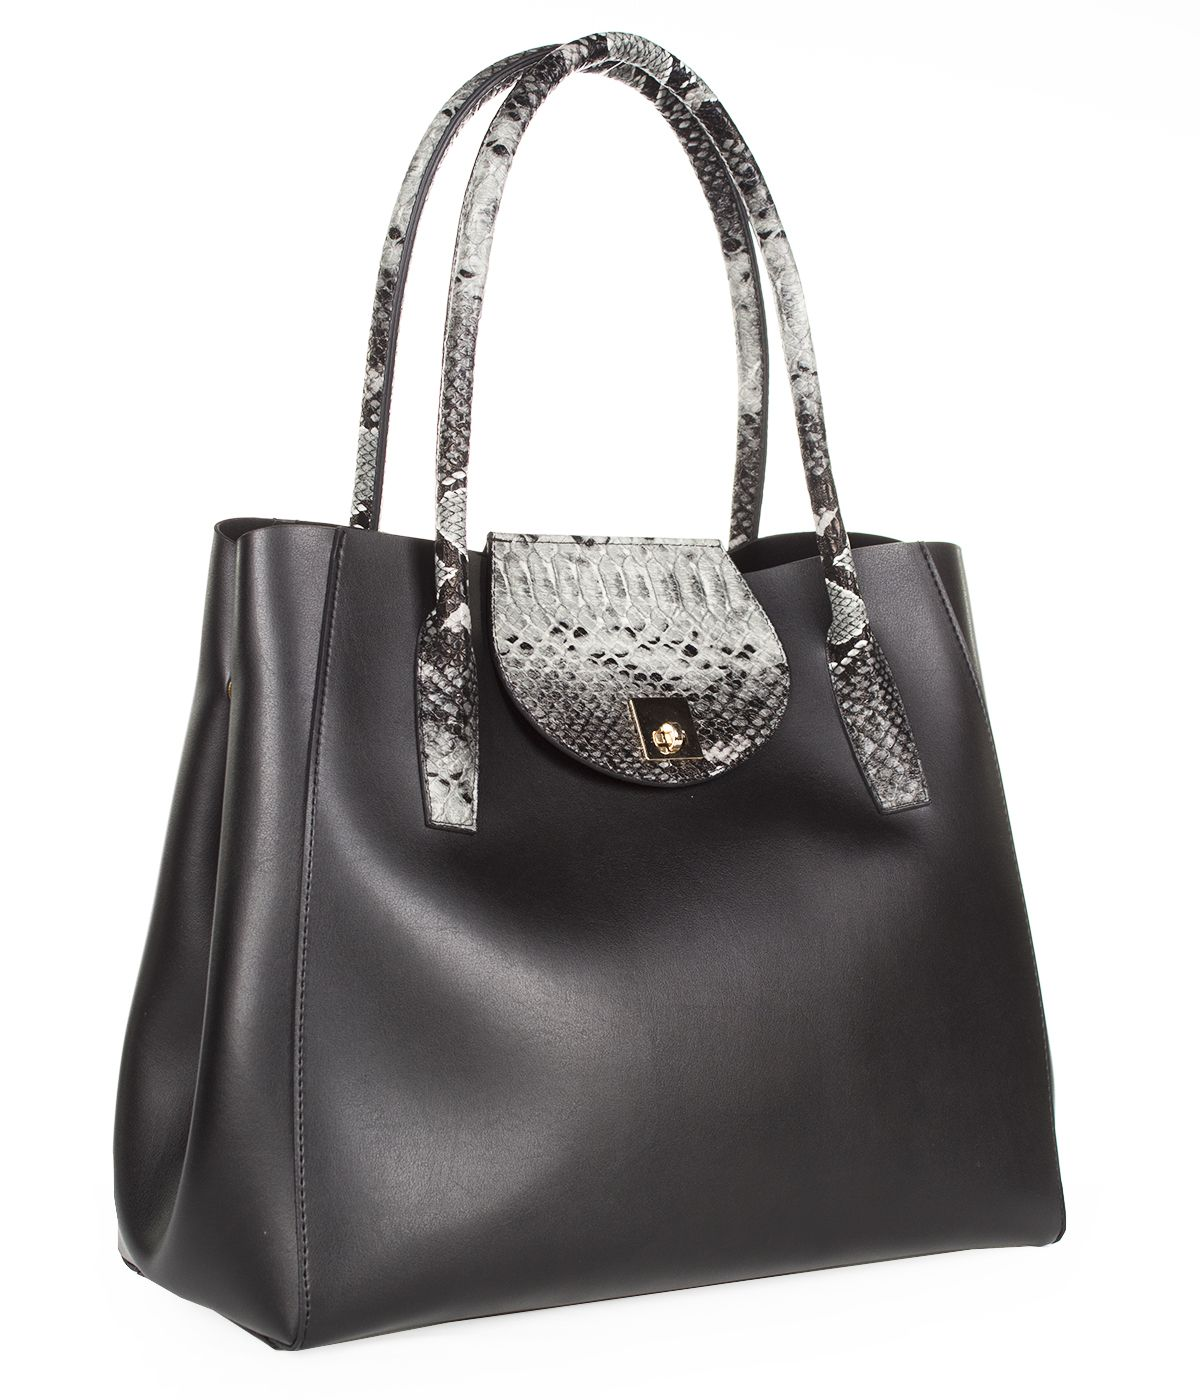 LEATHER BAG WITH SNAKE SKIN IMITATION  0